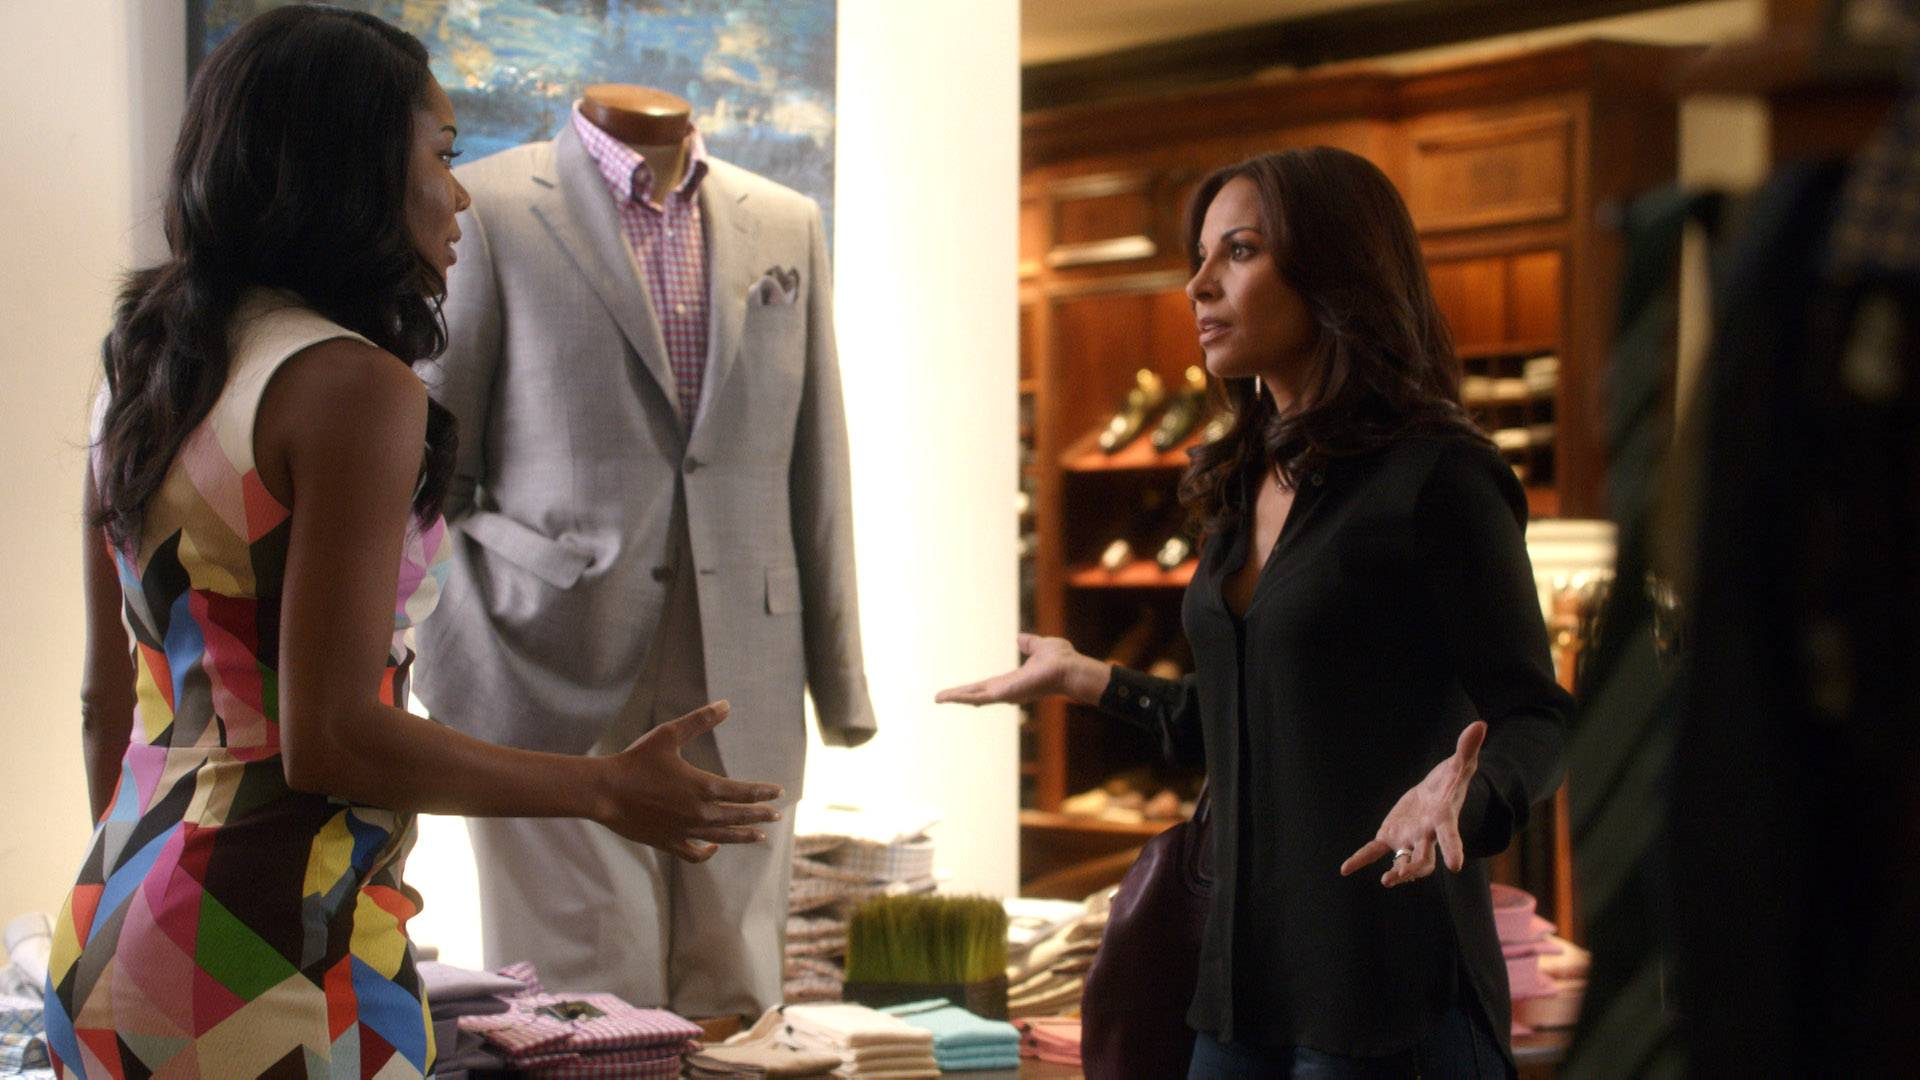 Stalker Much? - Mary Jane thought it was cool to pretend to want to spend quality time with Valerie just so she could try to get information on what's going on with David. Valerie remained mum on the situation.  (Photo: BET)